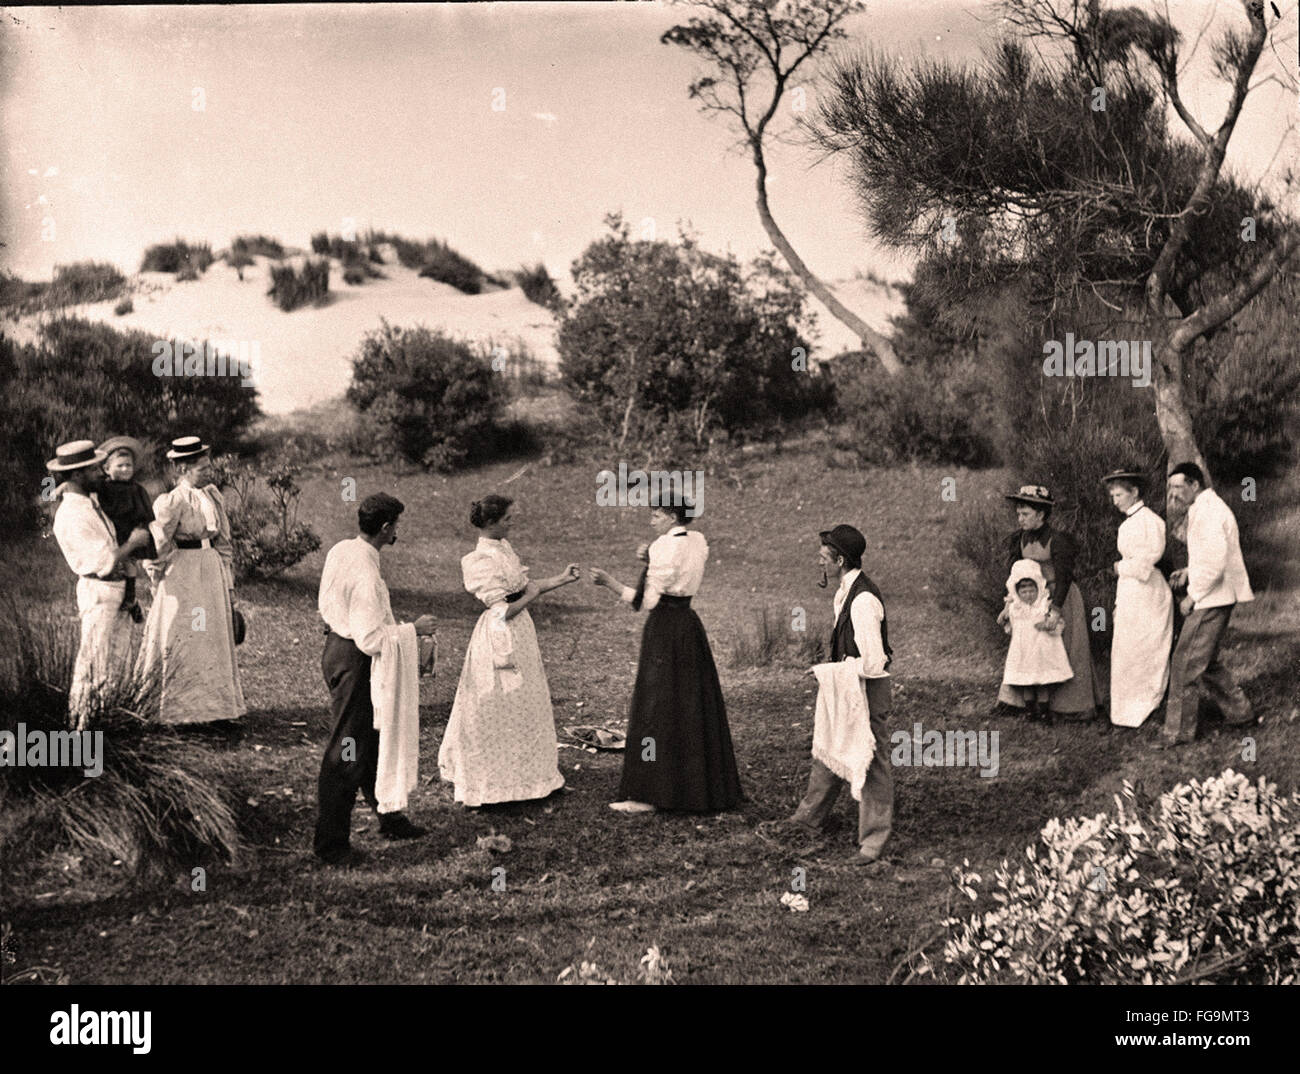 Women Boxing in Skirts and Blouses - Stock Image